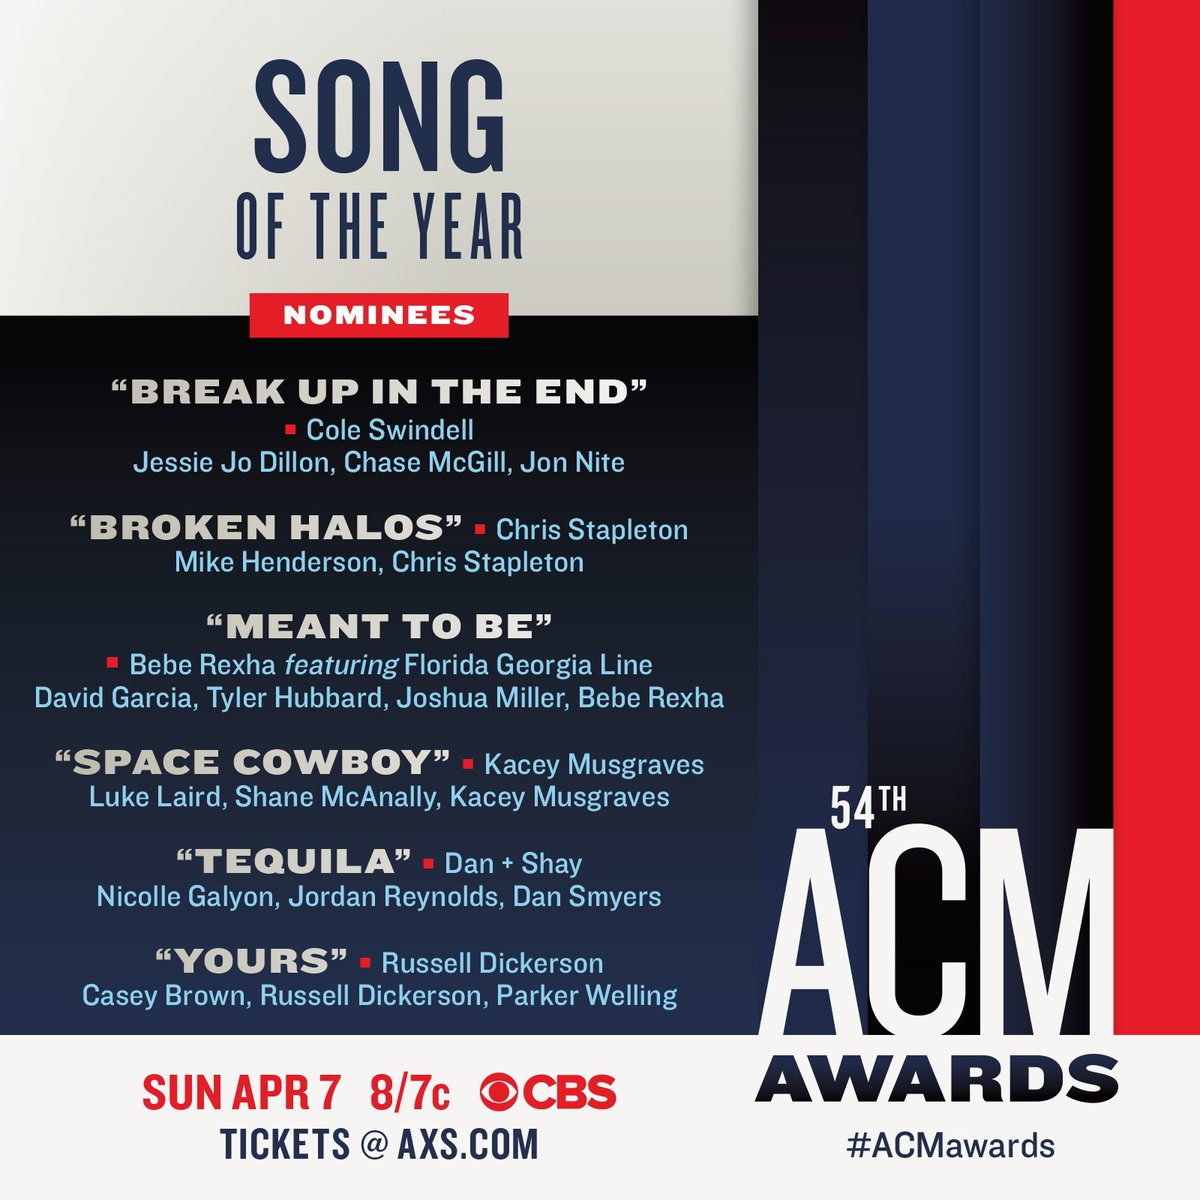 So it begins! Nominations for the 54th annual #ACMawards are in and first up are our  Song of the Year nominees , ,  ft. ,@coleswindell ,@ChrisStapleton ,@BebeRexha and @FLAGALine! @KaceyMusgraves🎶✨@DanAndShay🏆 @russelled